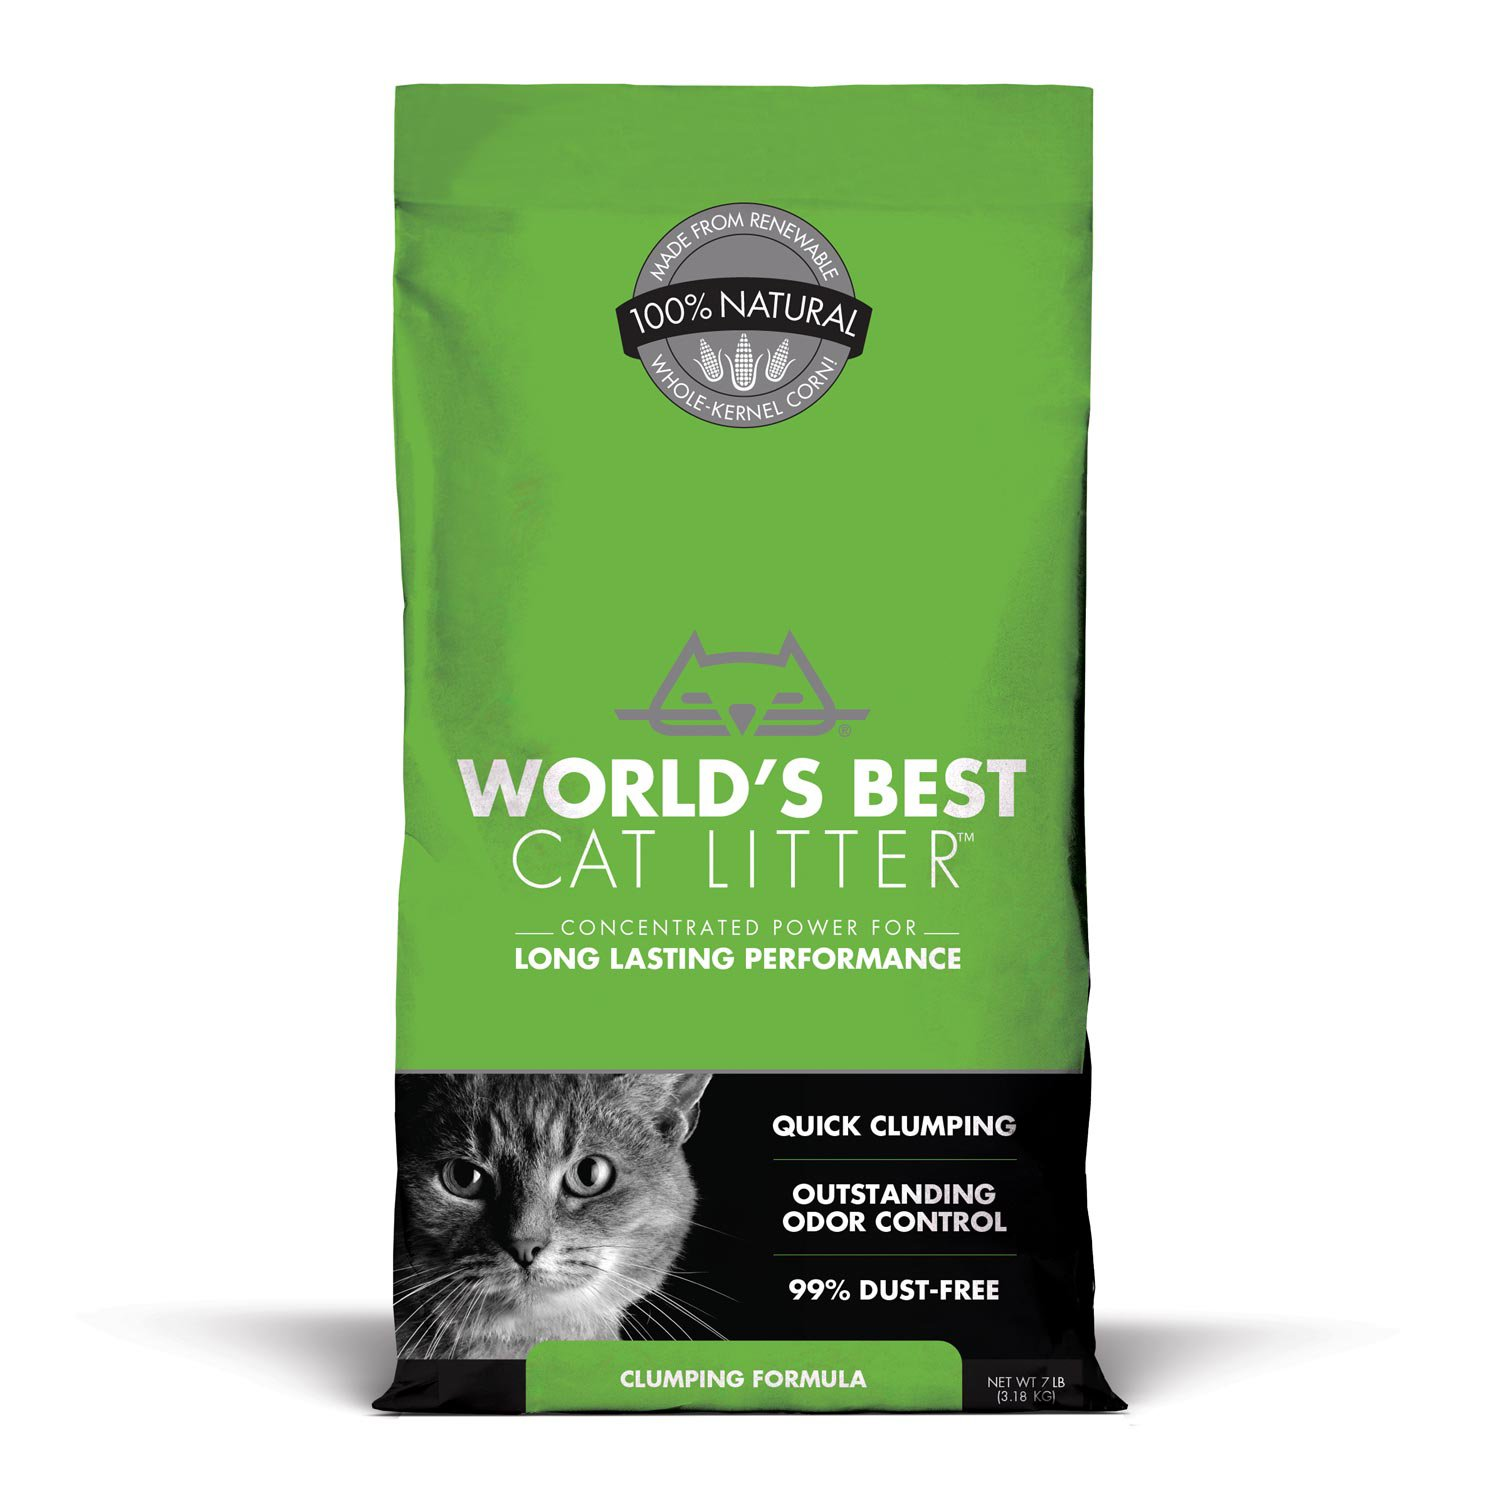 Which cat litter is better Cat litter - reviews, prices 96